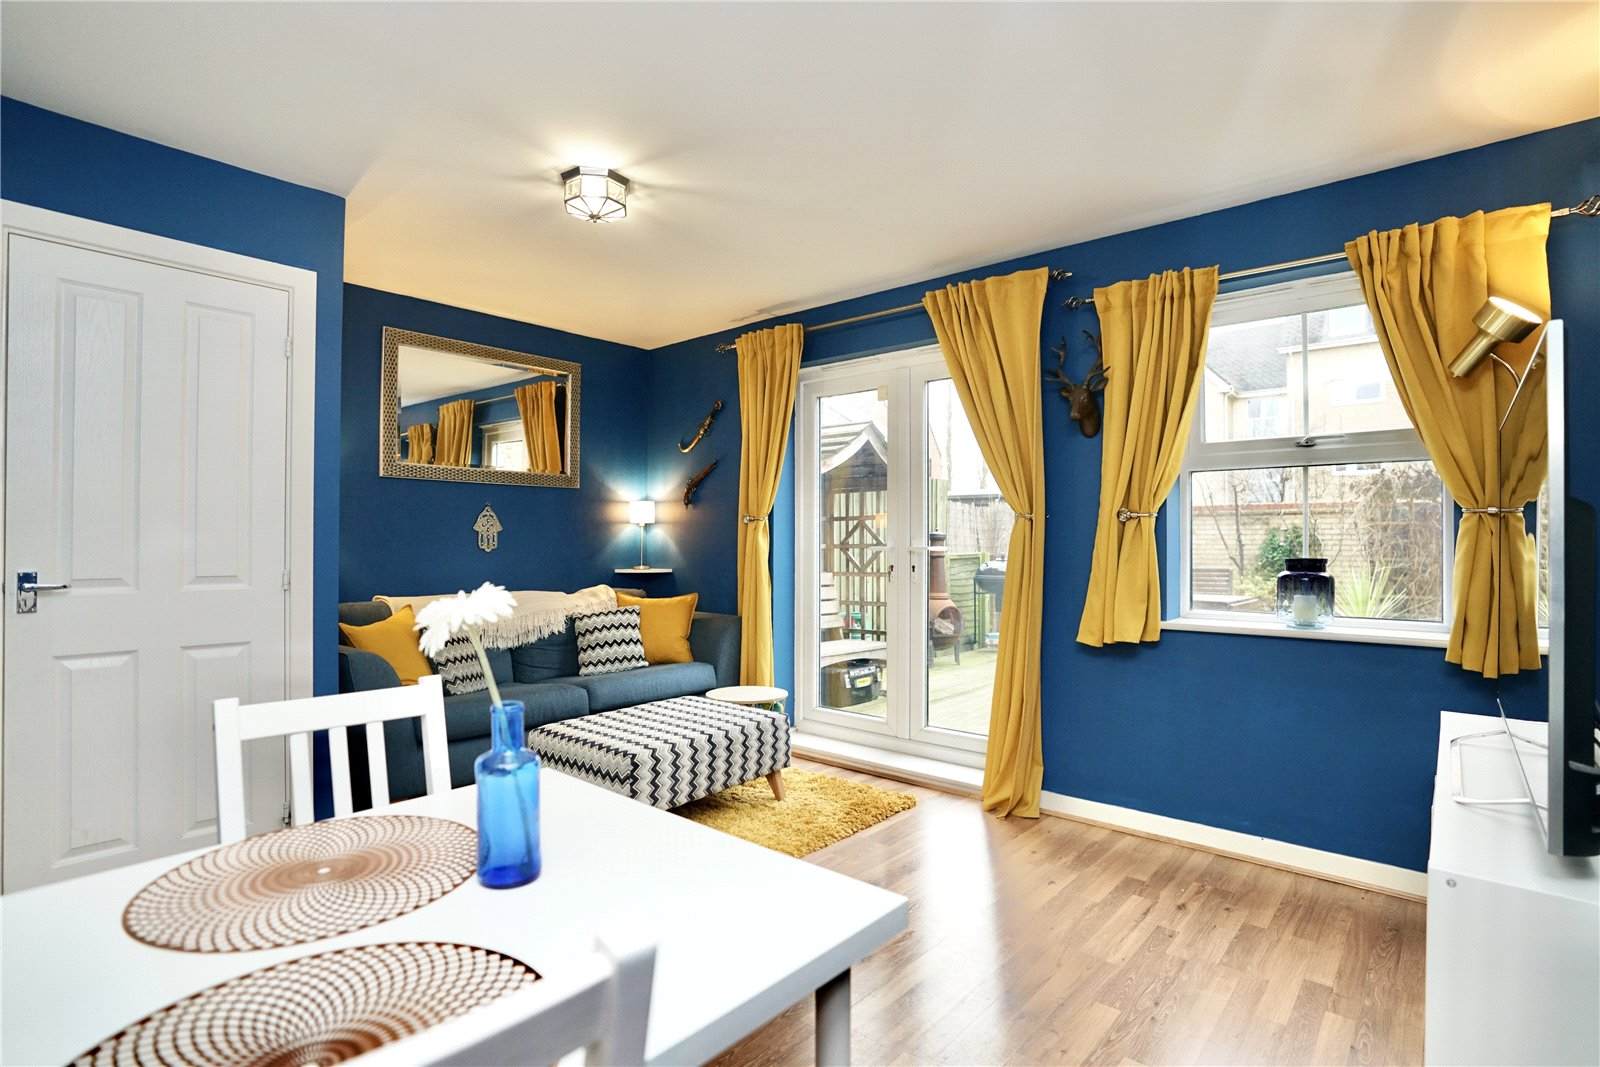 3 bed house for sale in Linton Close, Eaton Socon 1